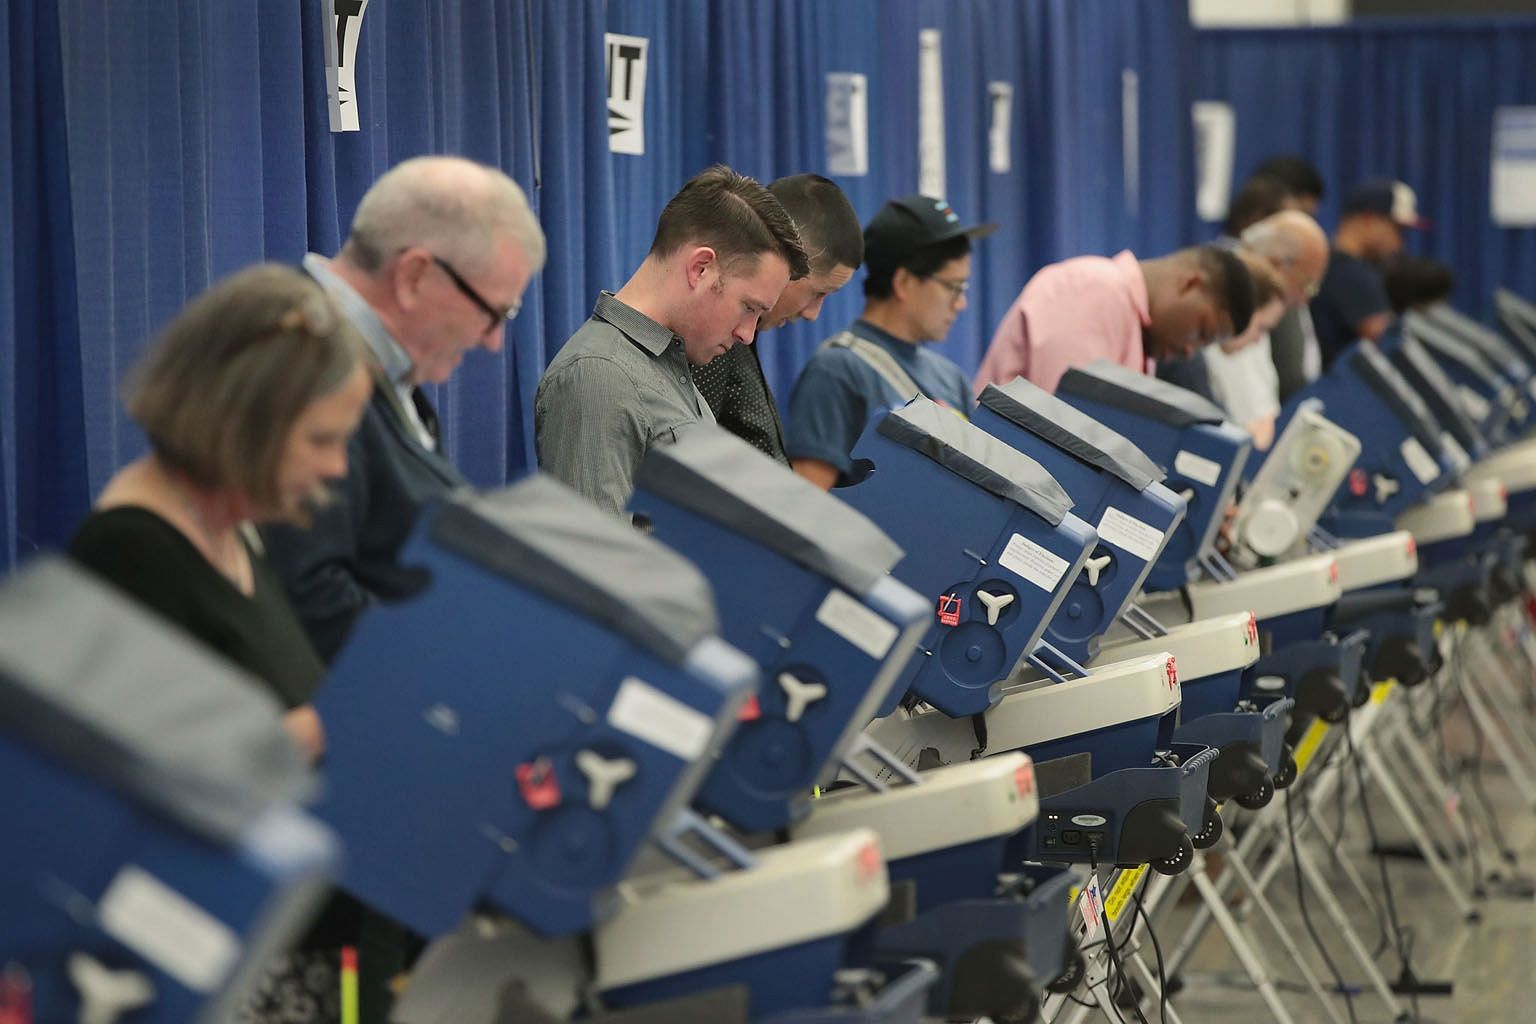 Voters casting ballots for the Nov 8 election at an early voting site on Oct 18, in Chicago, Illinois. Americans who identify themselves as independent make up 40 per cent of the population, outnumbering voters who call themselves Democrats or Republicans